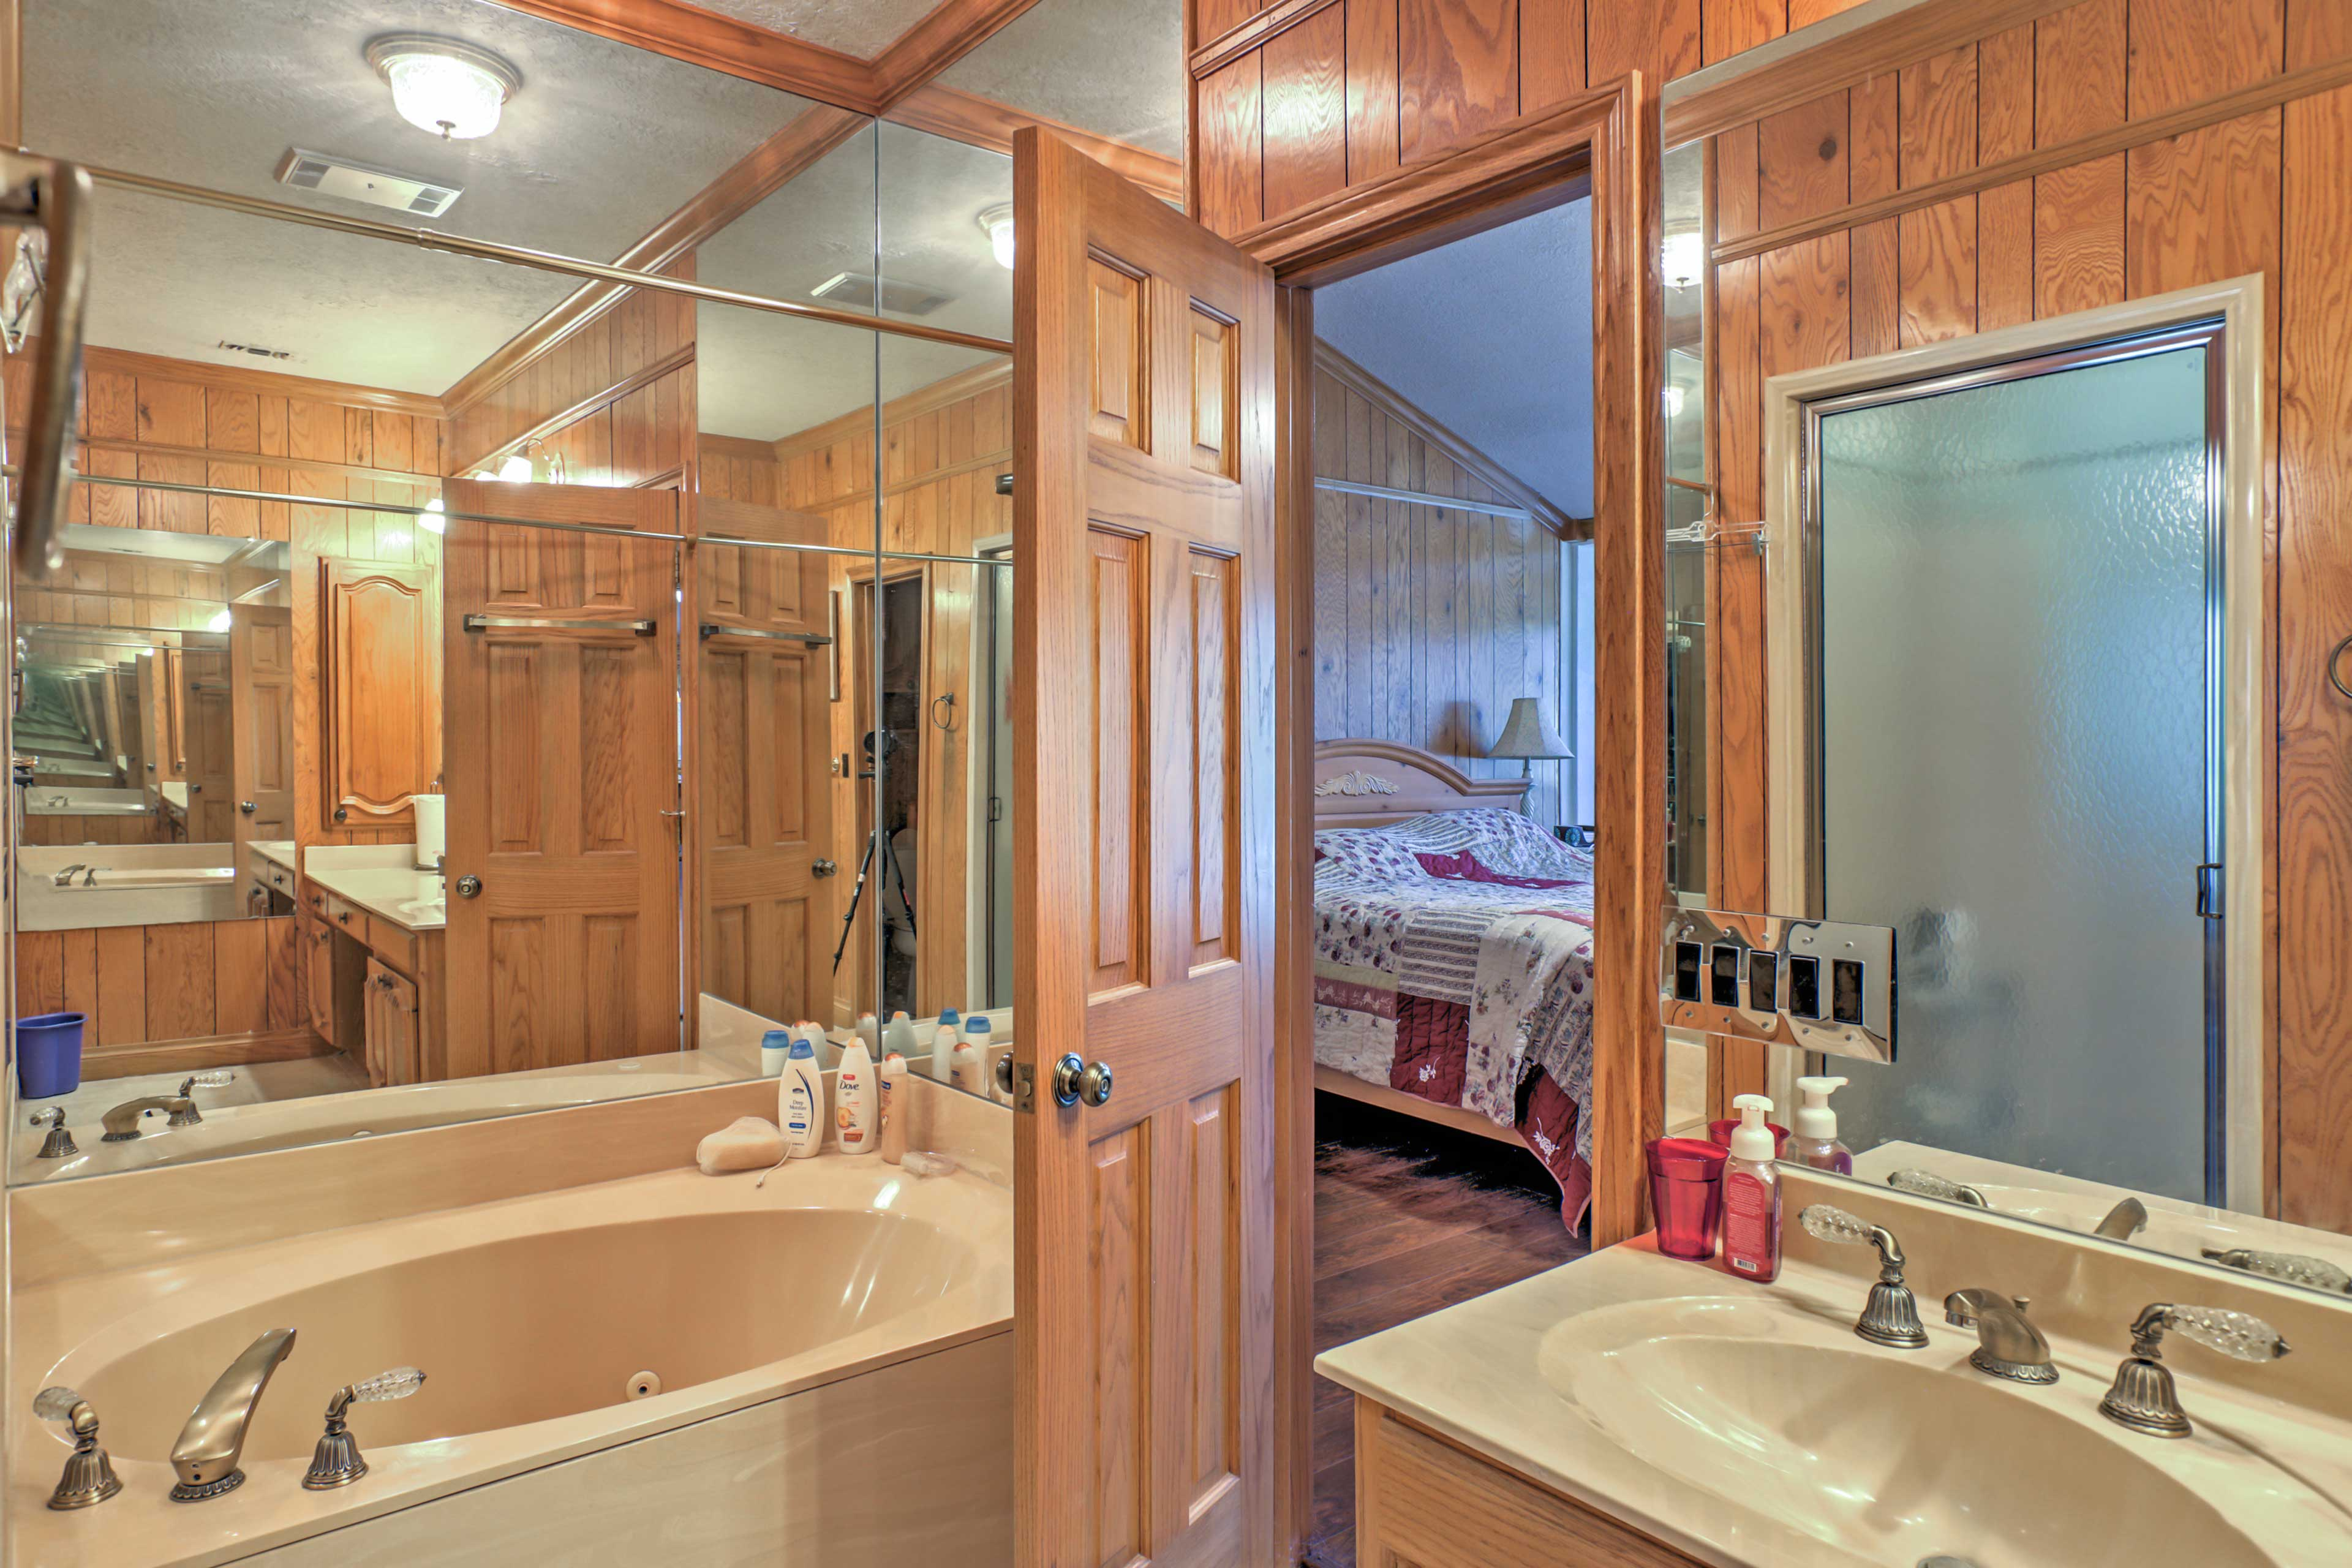 This bathroom features a large tub and single vanity.